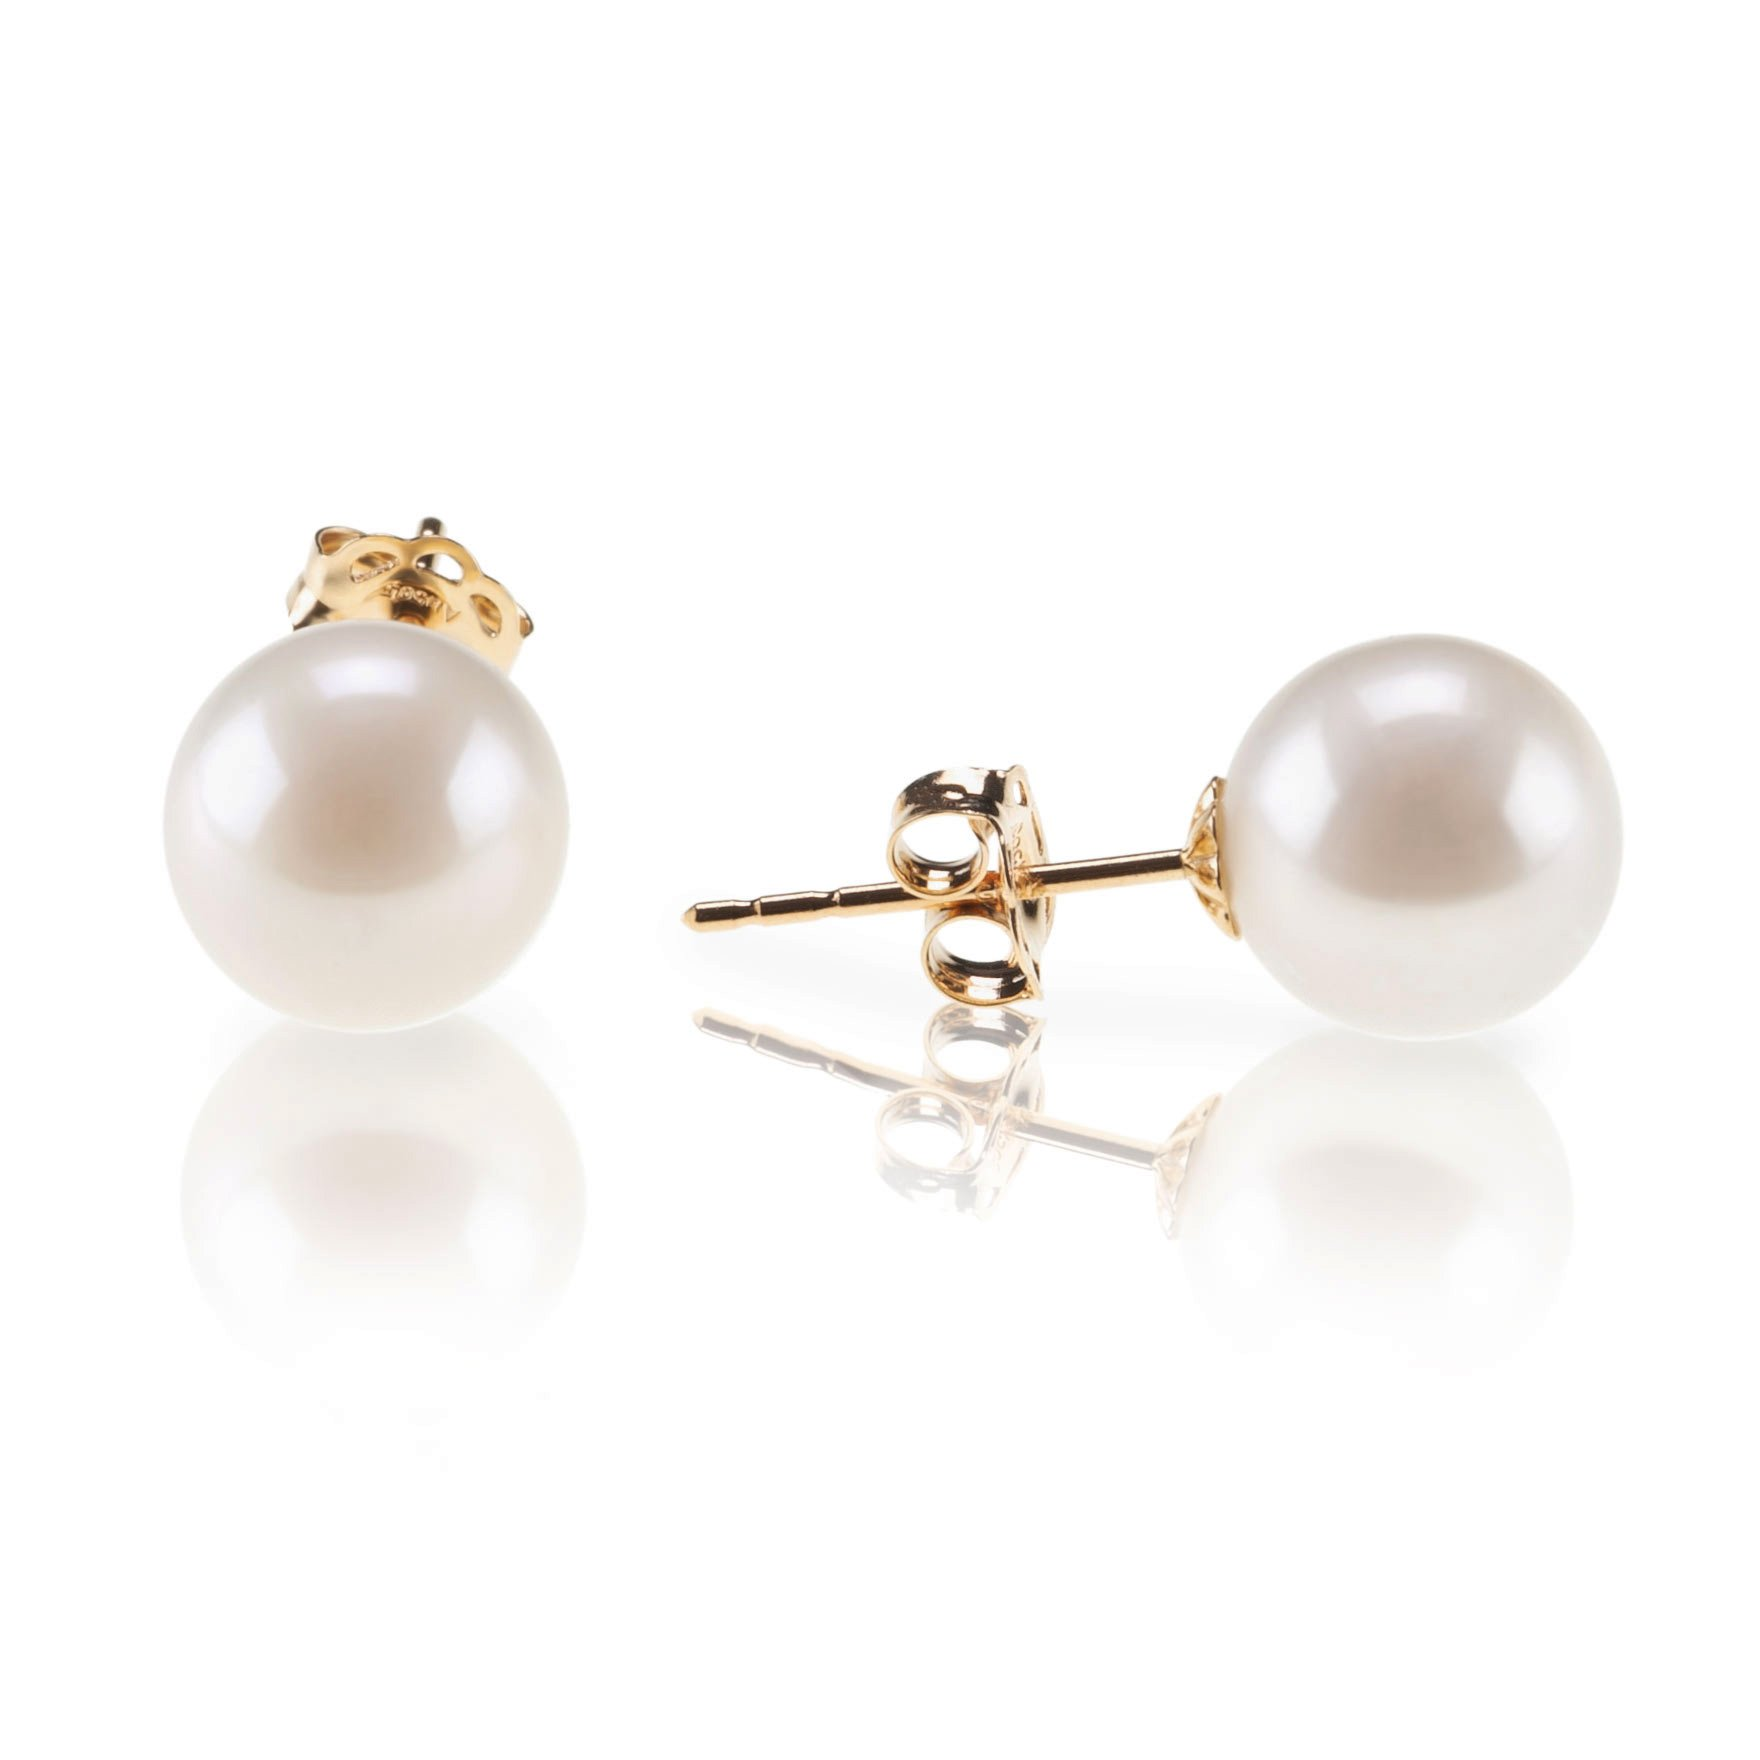 PAVOI 18K Yellow Gold Plated Sterling Silver Round Stud White Simulated Shell Pearl - 10mm